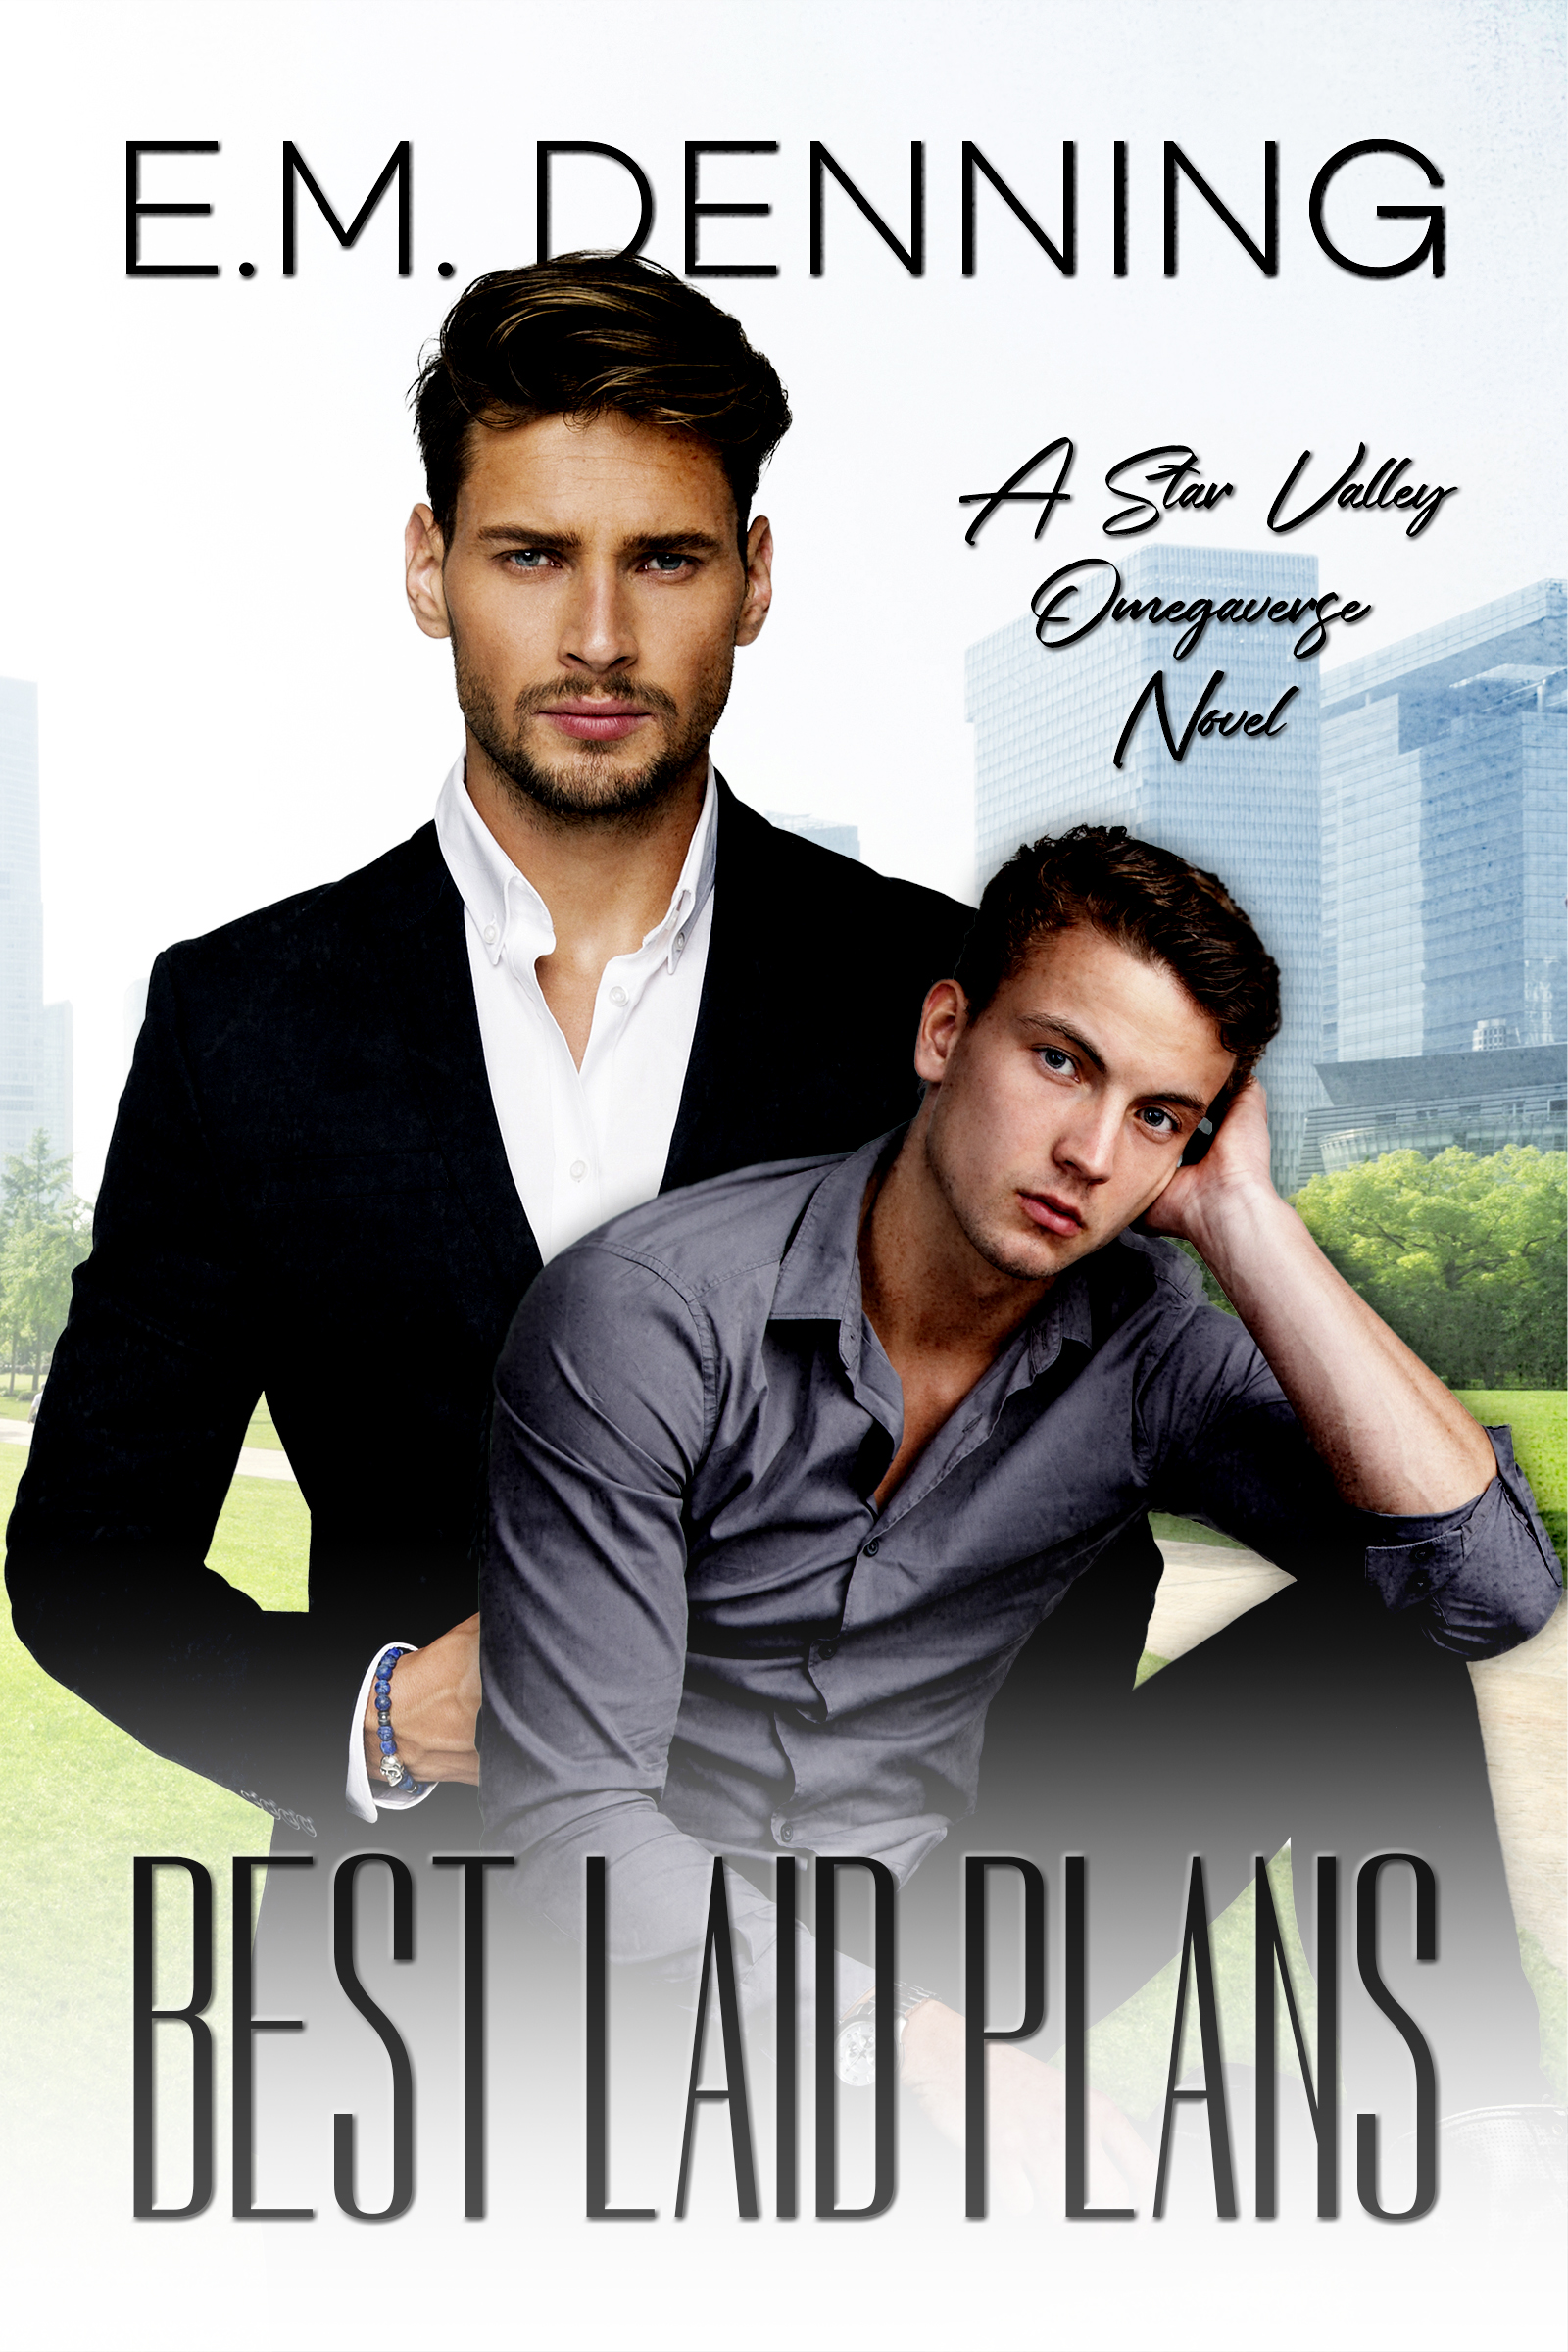 Excerpt: Best Laid Plans by E. M. Denning